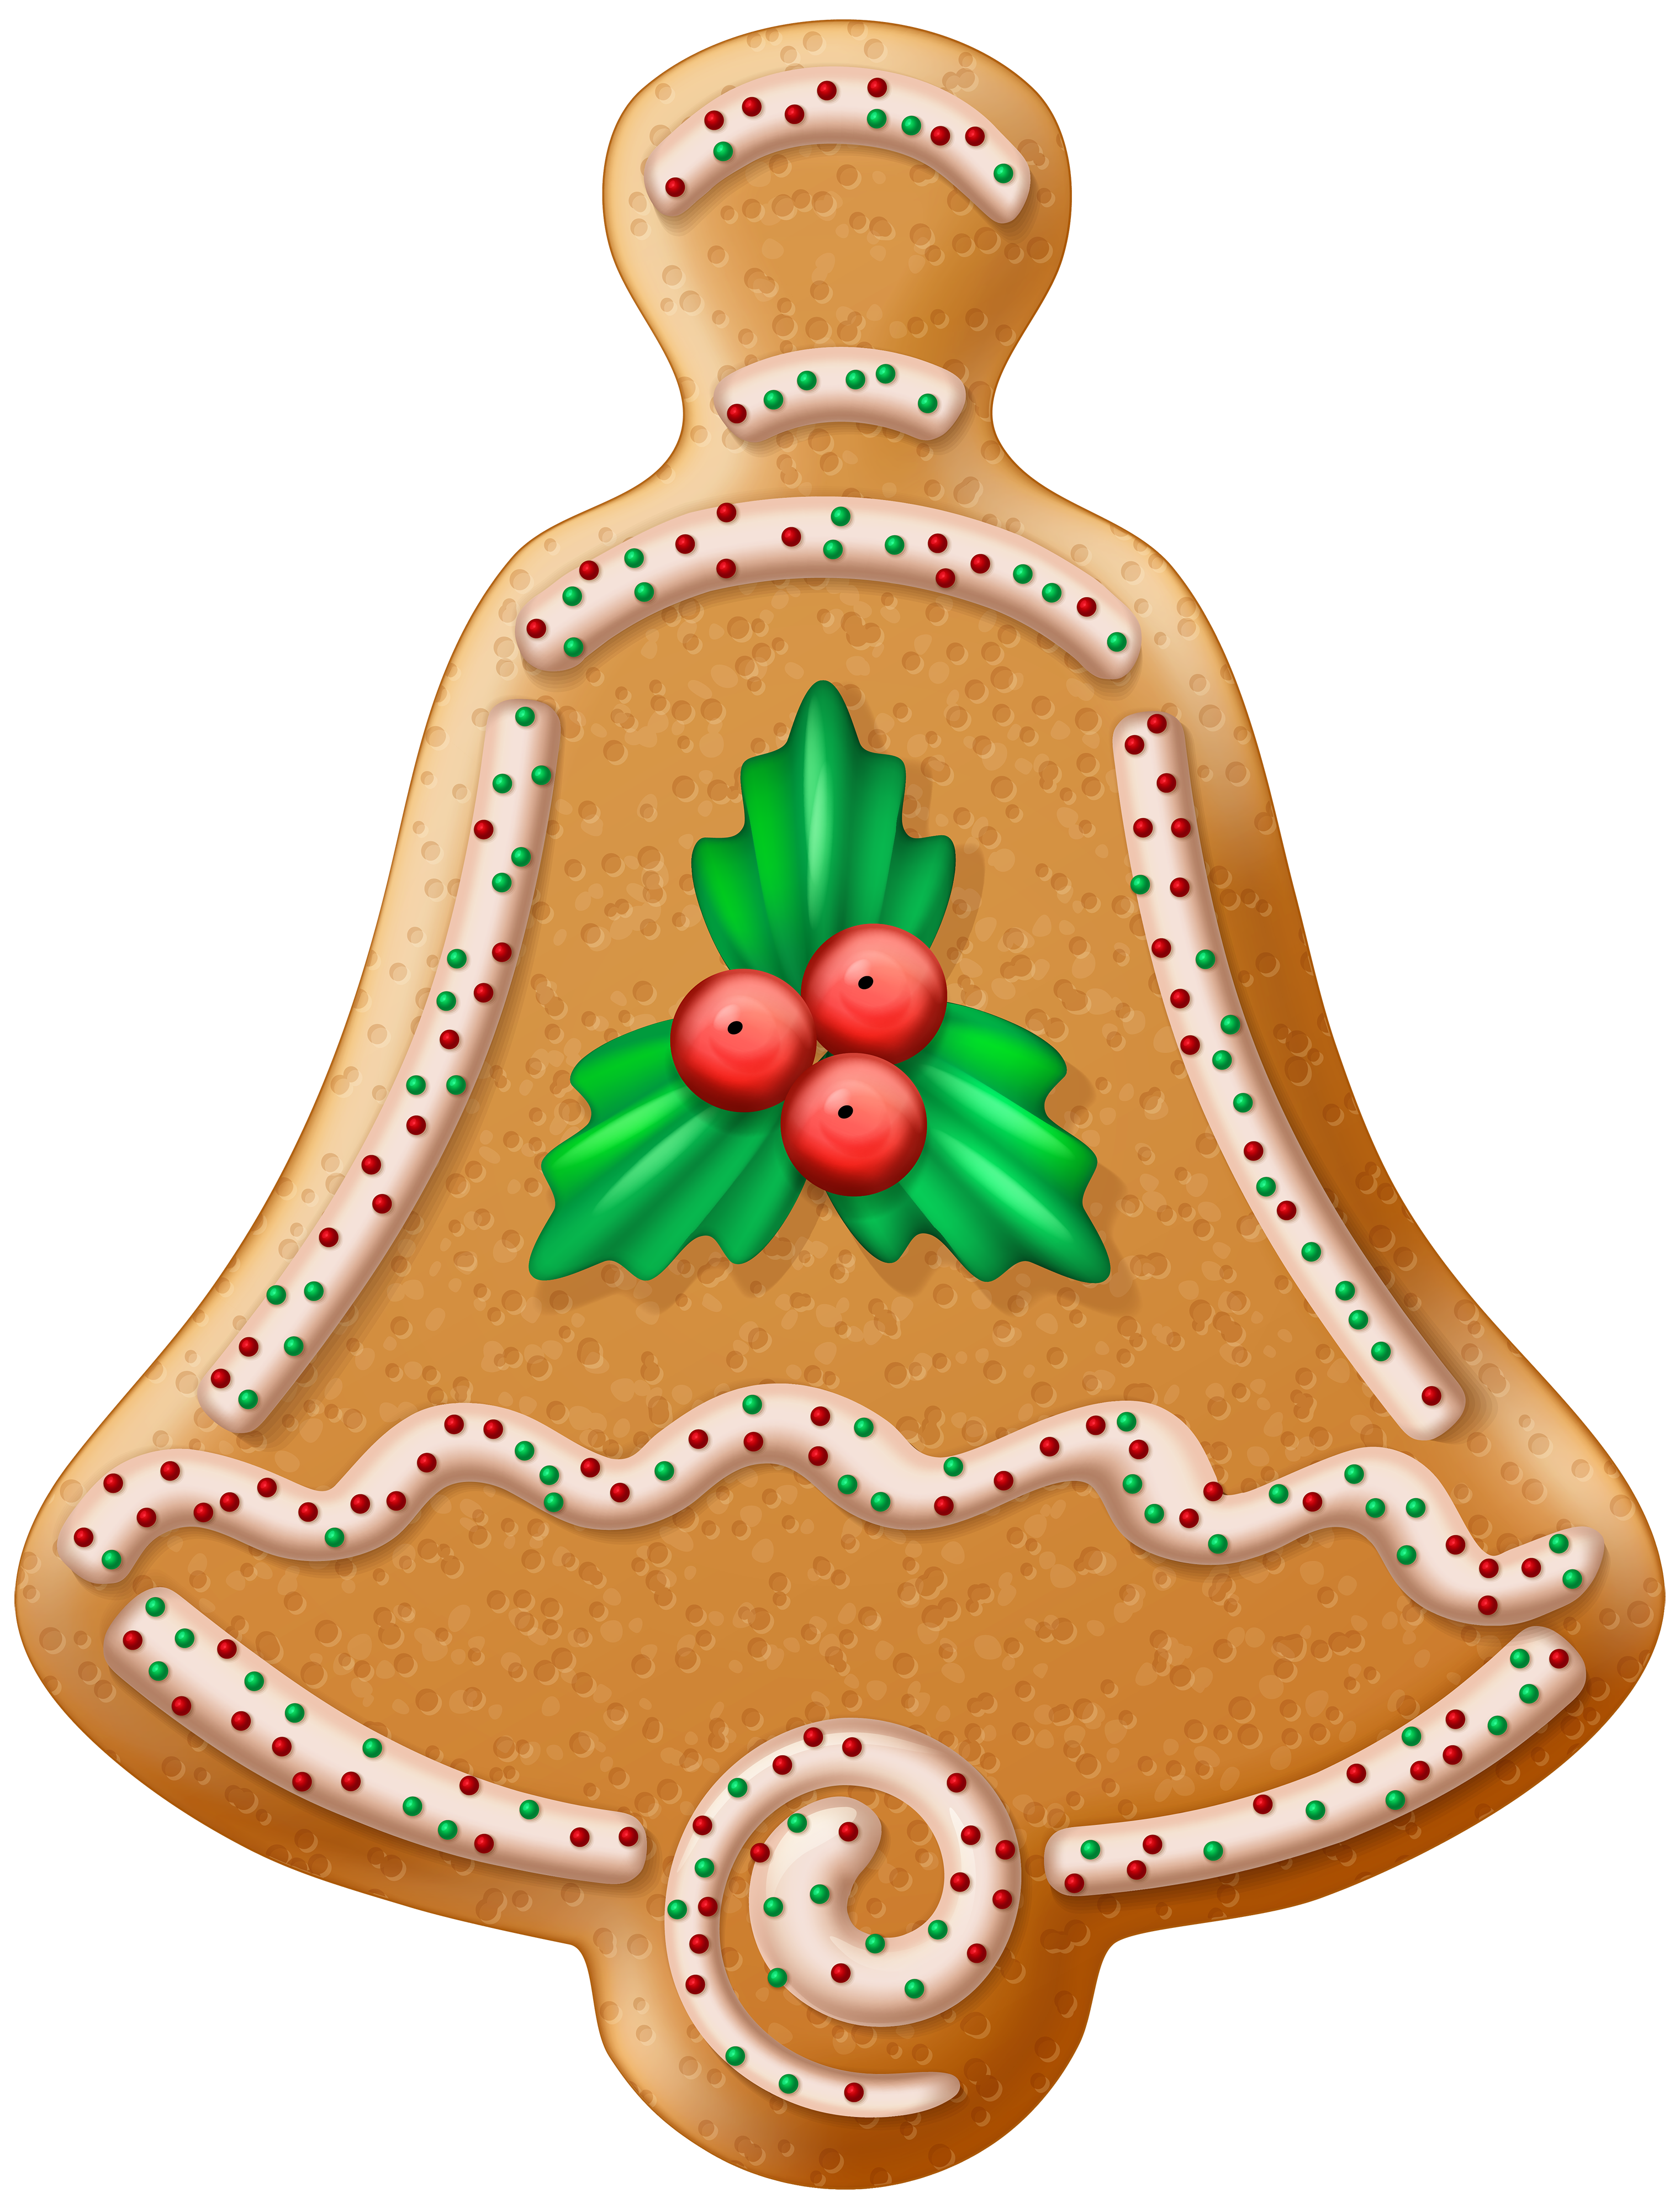 Christmas Cookie Bell Transparent PNG Clip Art Image.